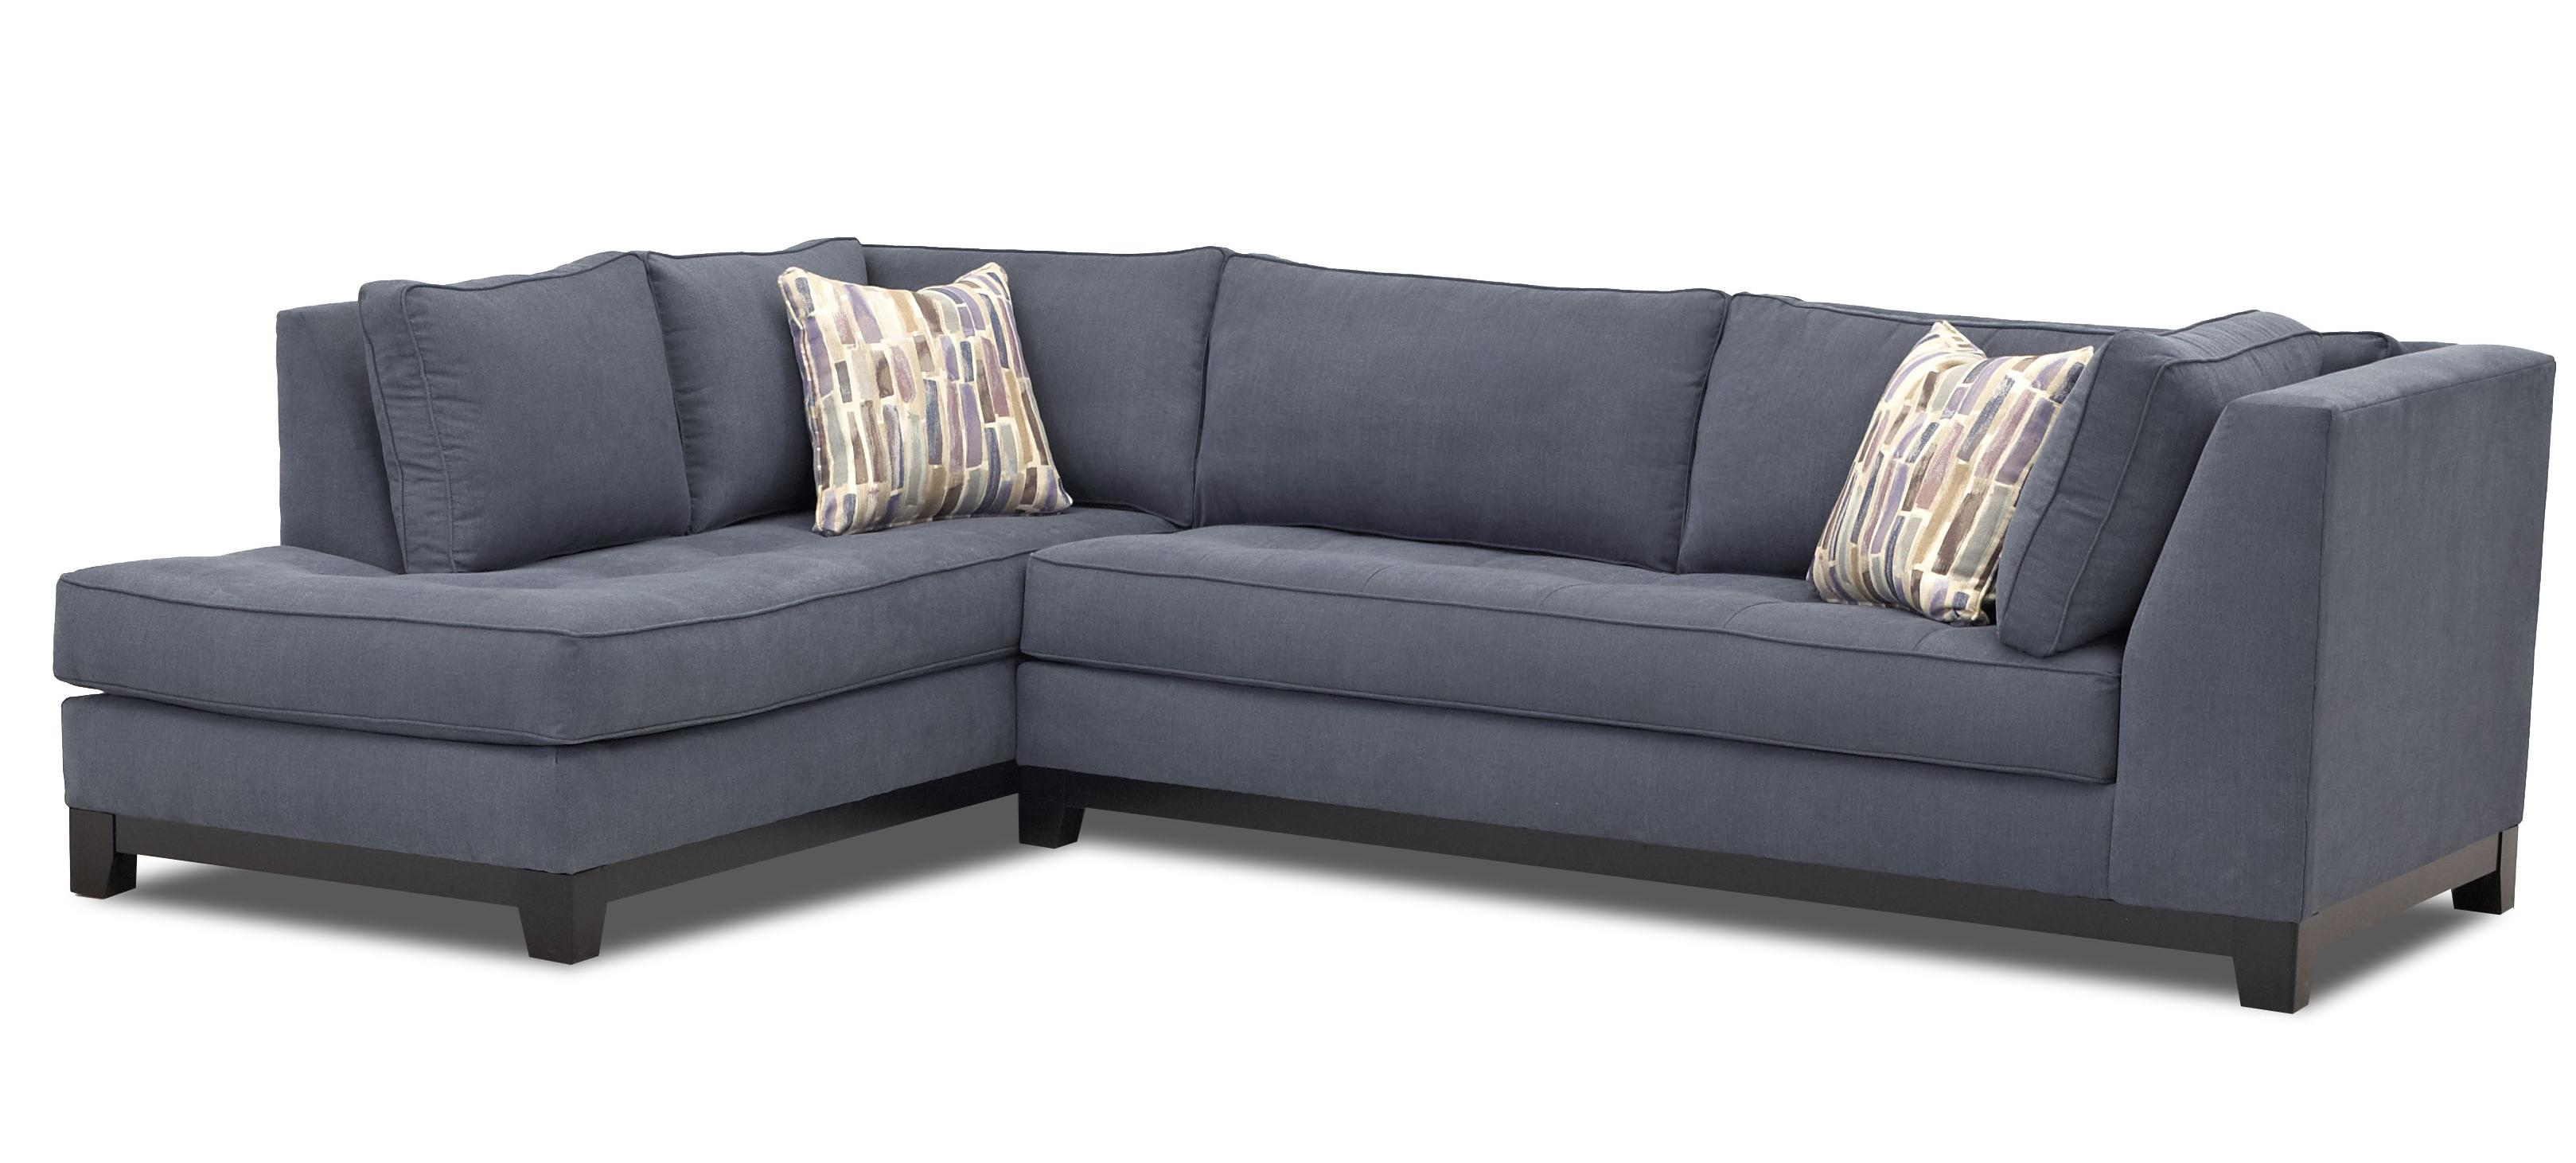 klaussner biscoe contemporary 2 piece sectional sofa with chaise